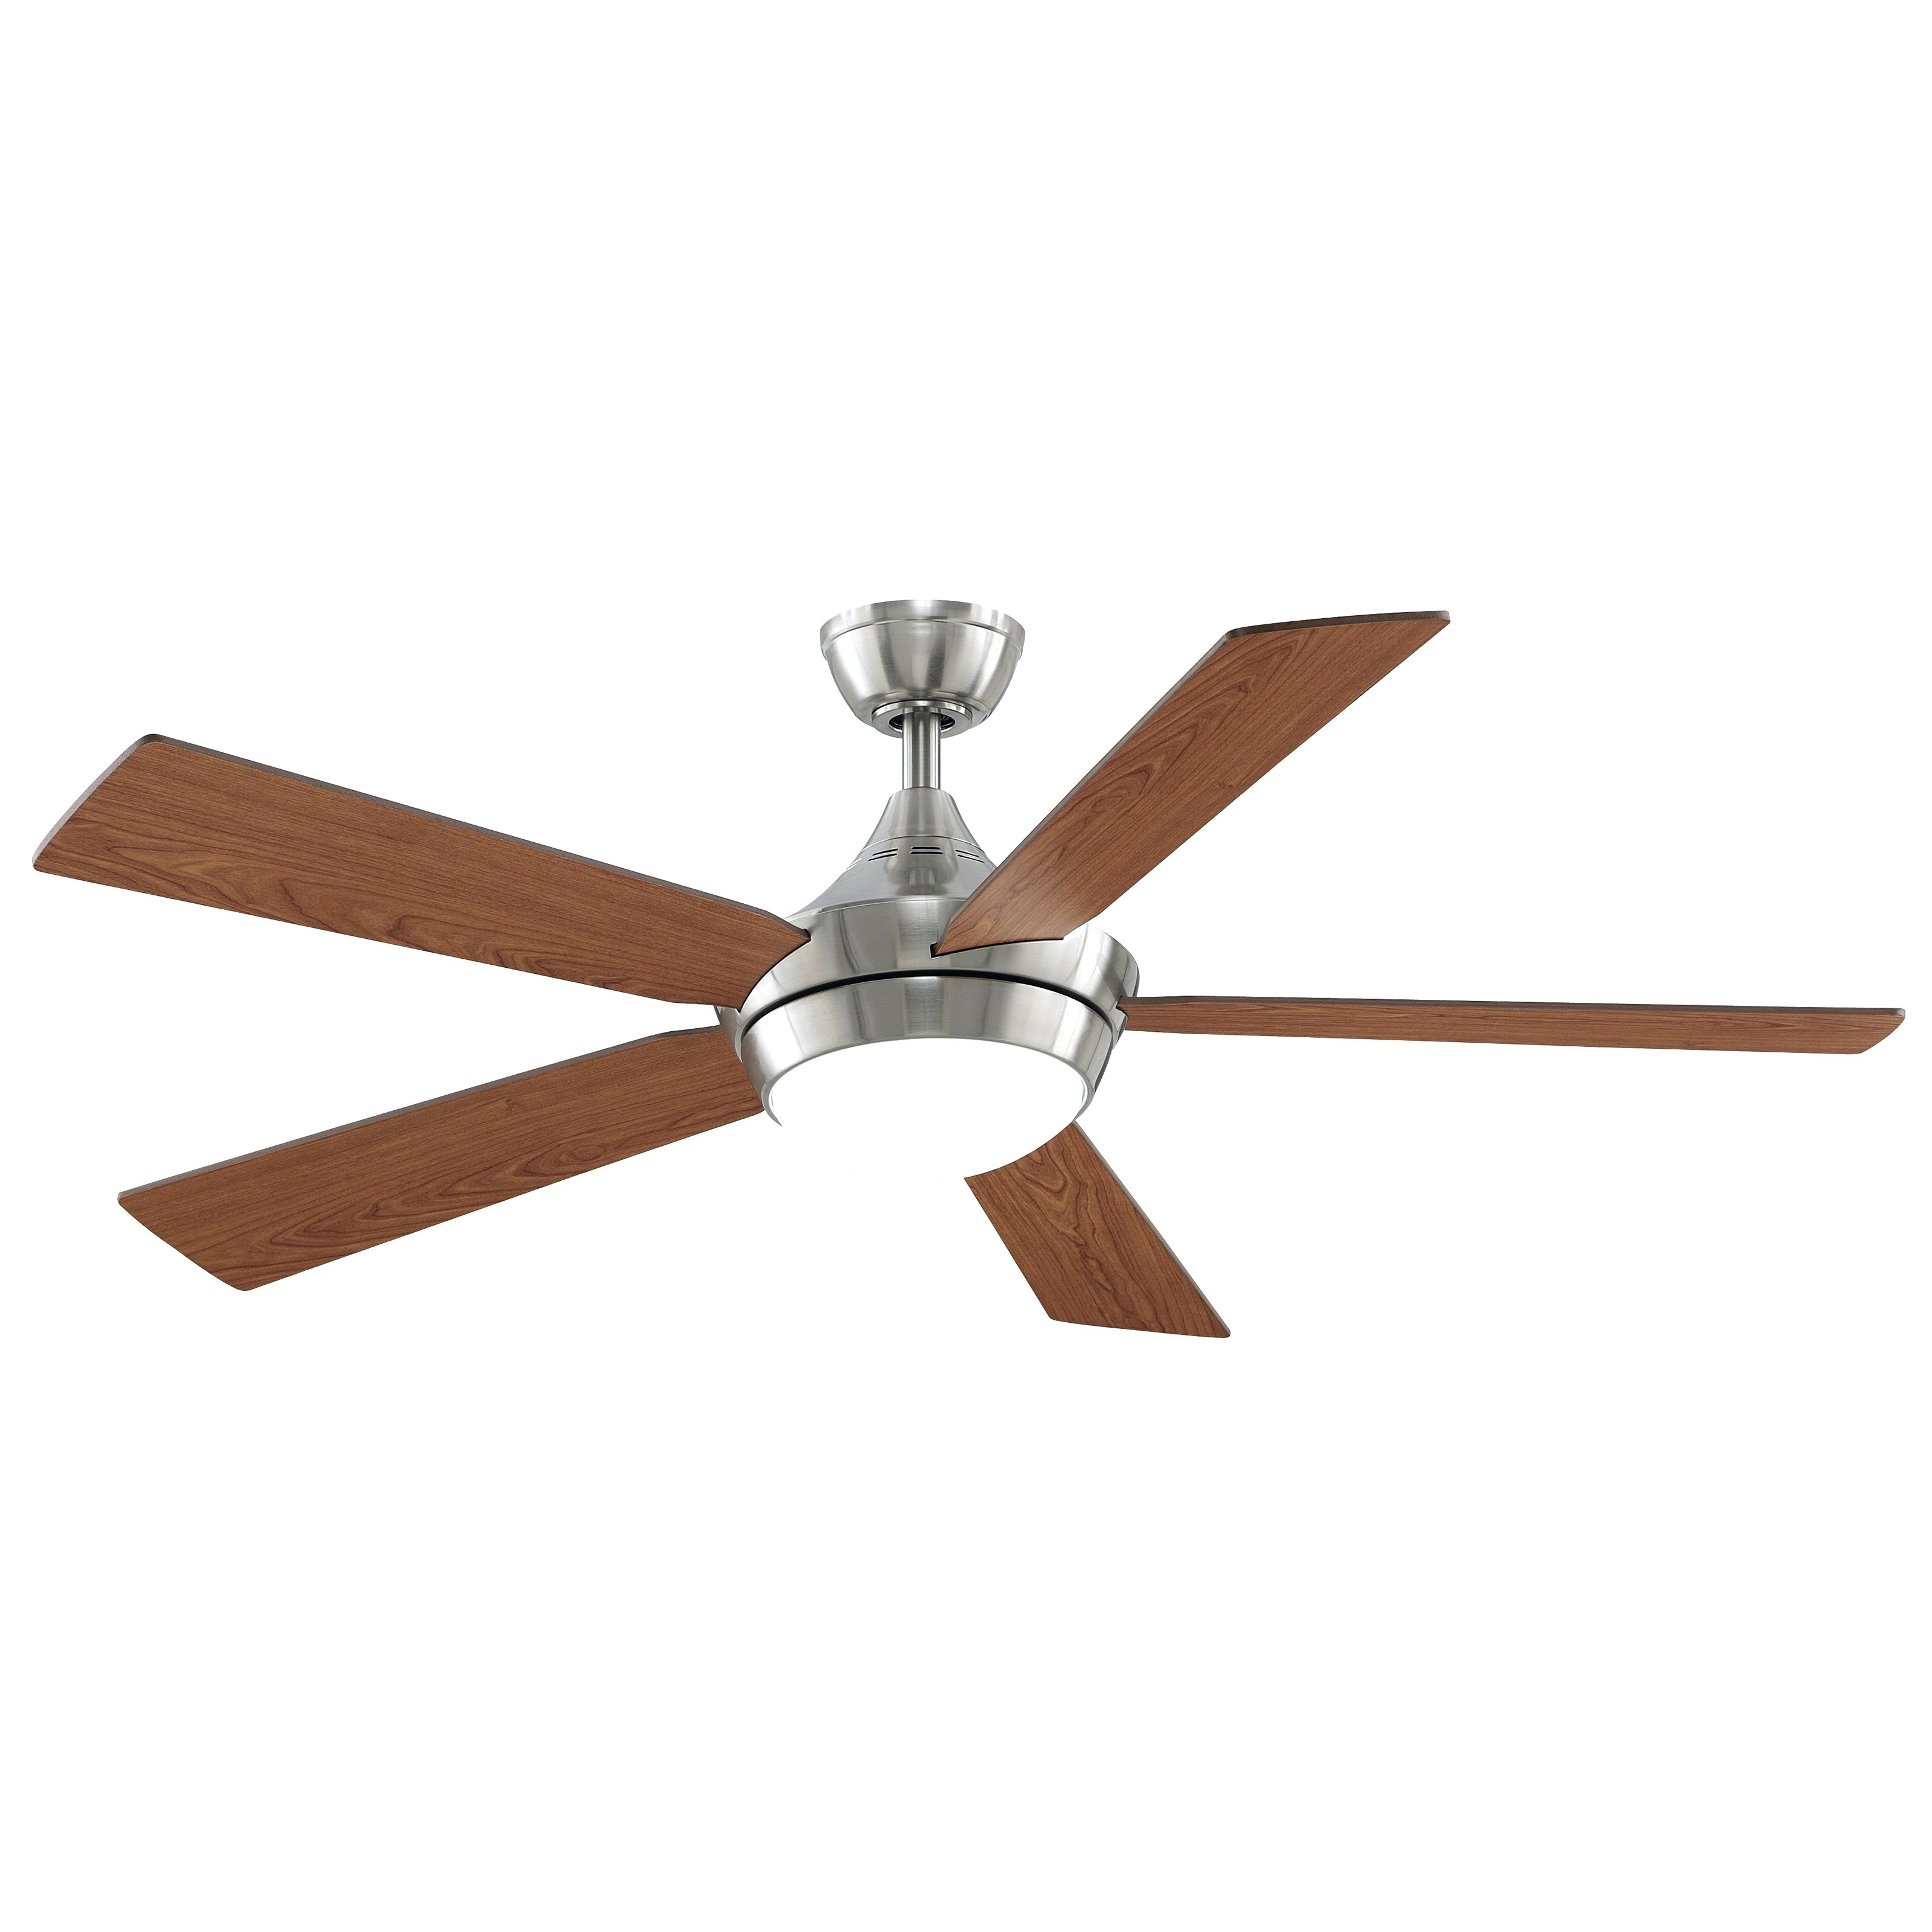 Outdoor Ceiling Fans At Bunnings Within Well Known Mercator Ceiling Fans Bunnings • Ceiling Fans Ideas (View 3 of 20)